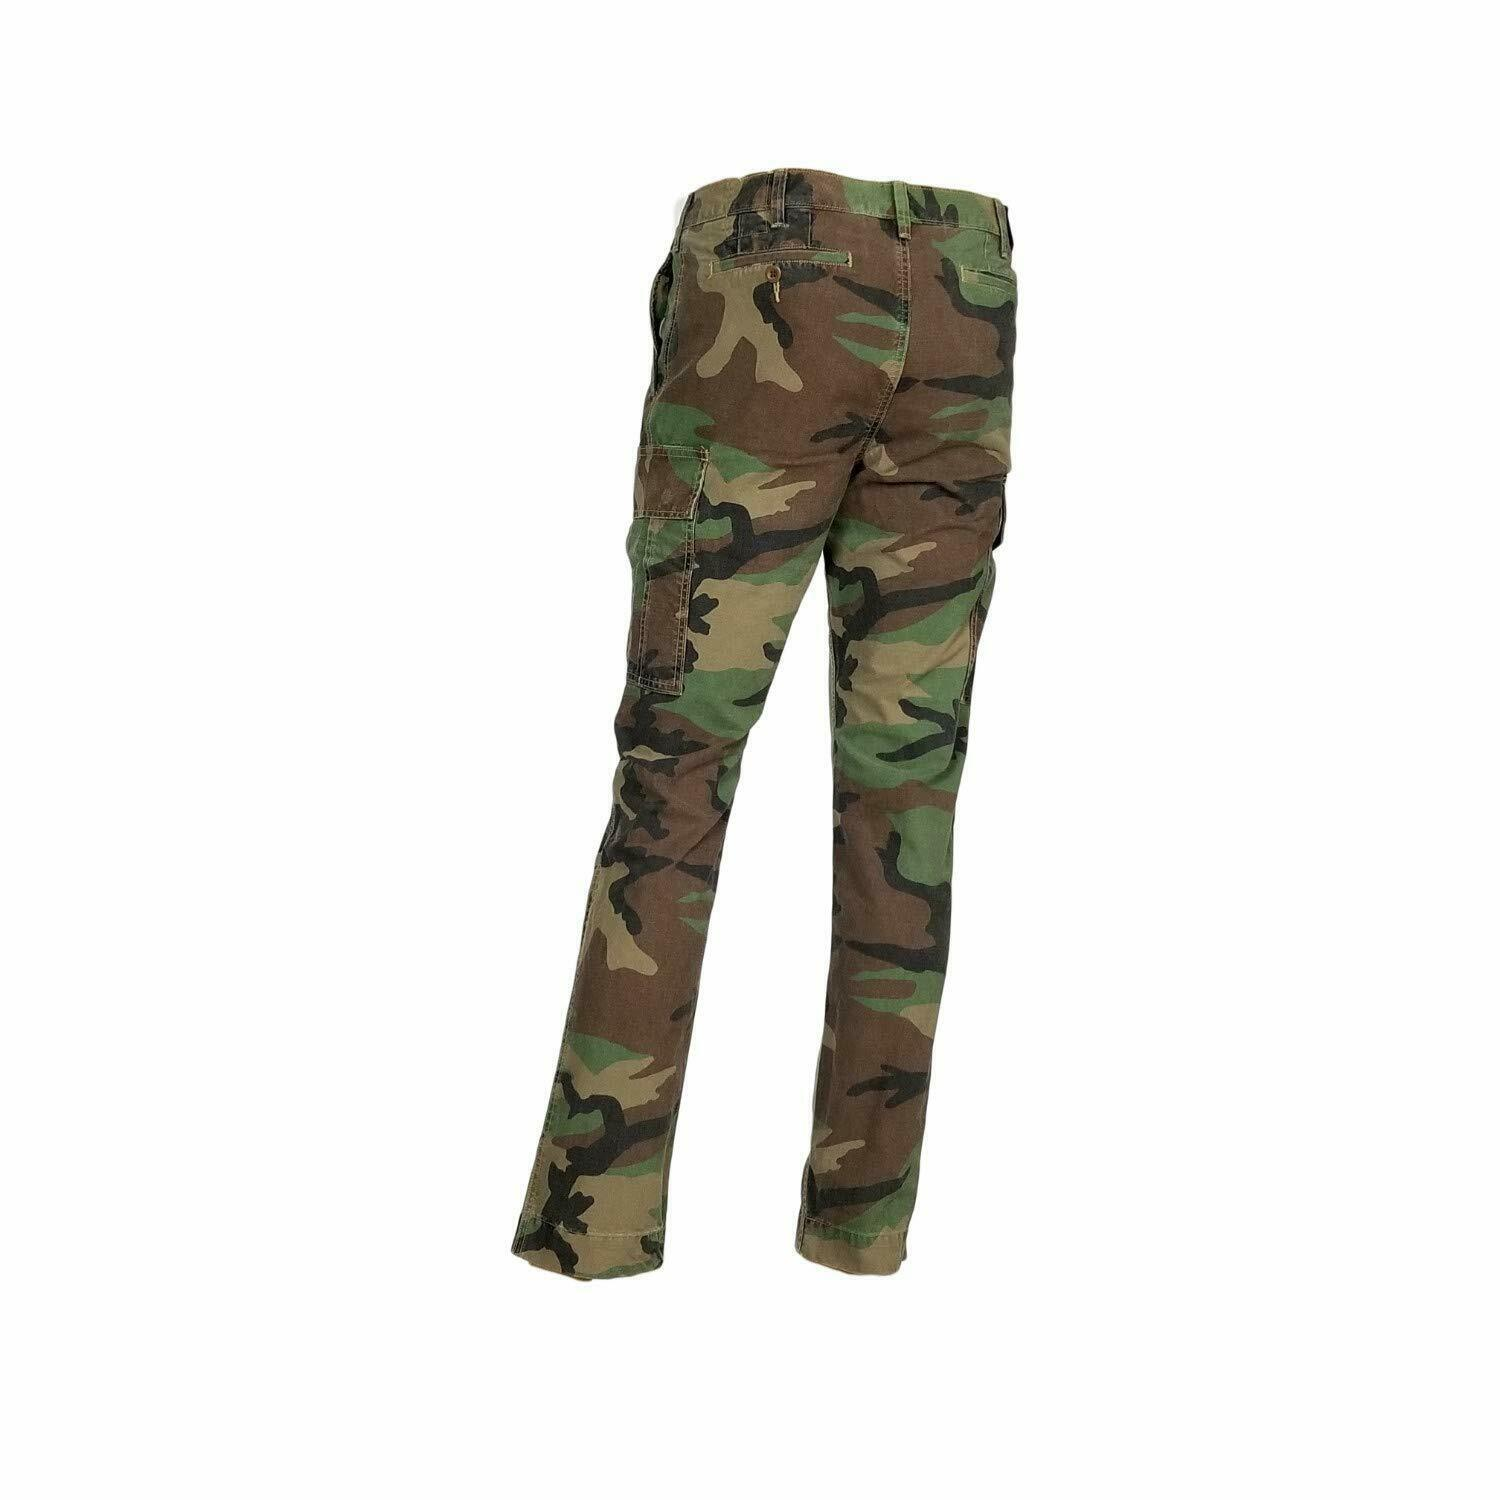 New Ralph Lauren Polo Mens Stretch Slim Fit Camouflage Pant 35x32 Green - $98.95